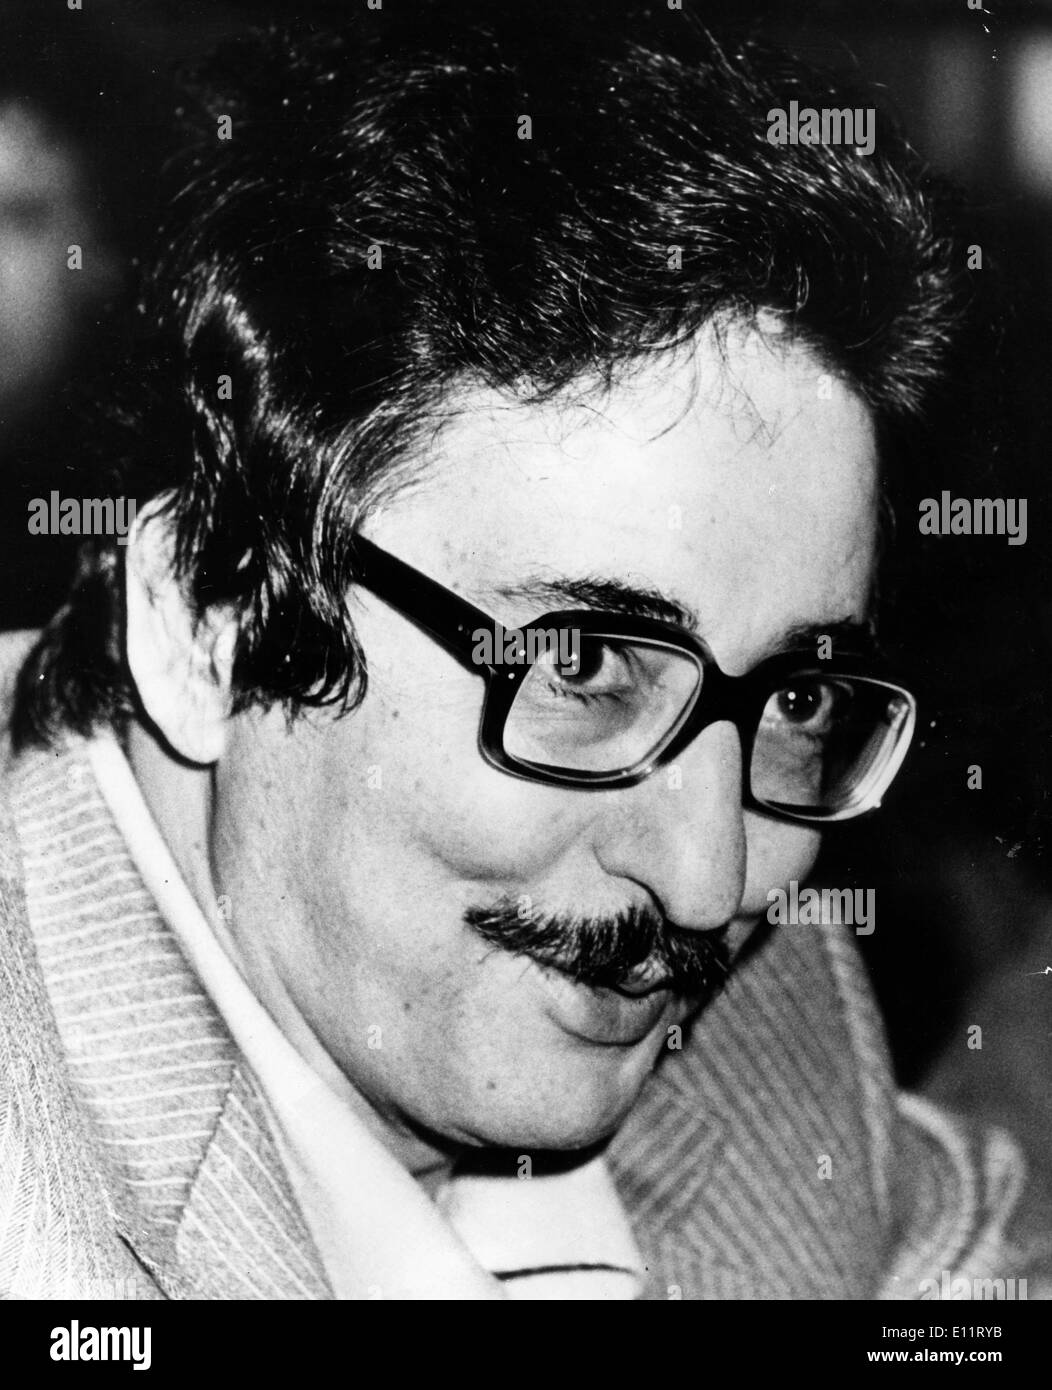 Nov 08, 1979 - Tehran, Iran - ABOL-HASSAN BANISADR was the first President of Iran, following the 1979 Iranian Revolution and - Stock Image